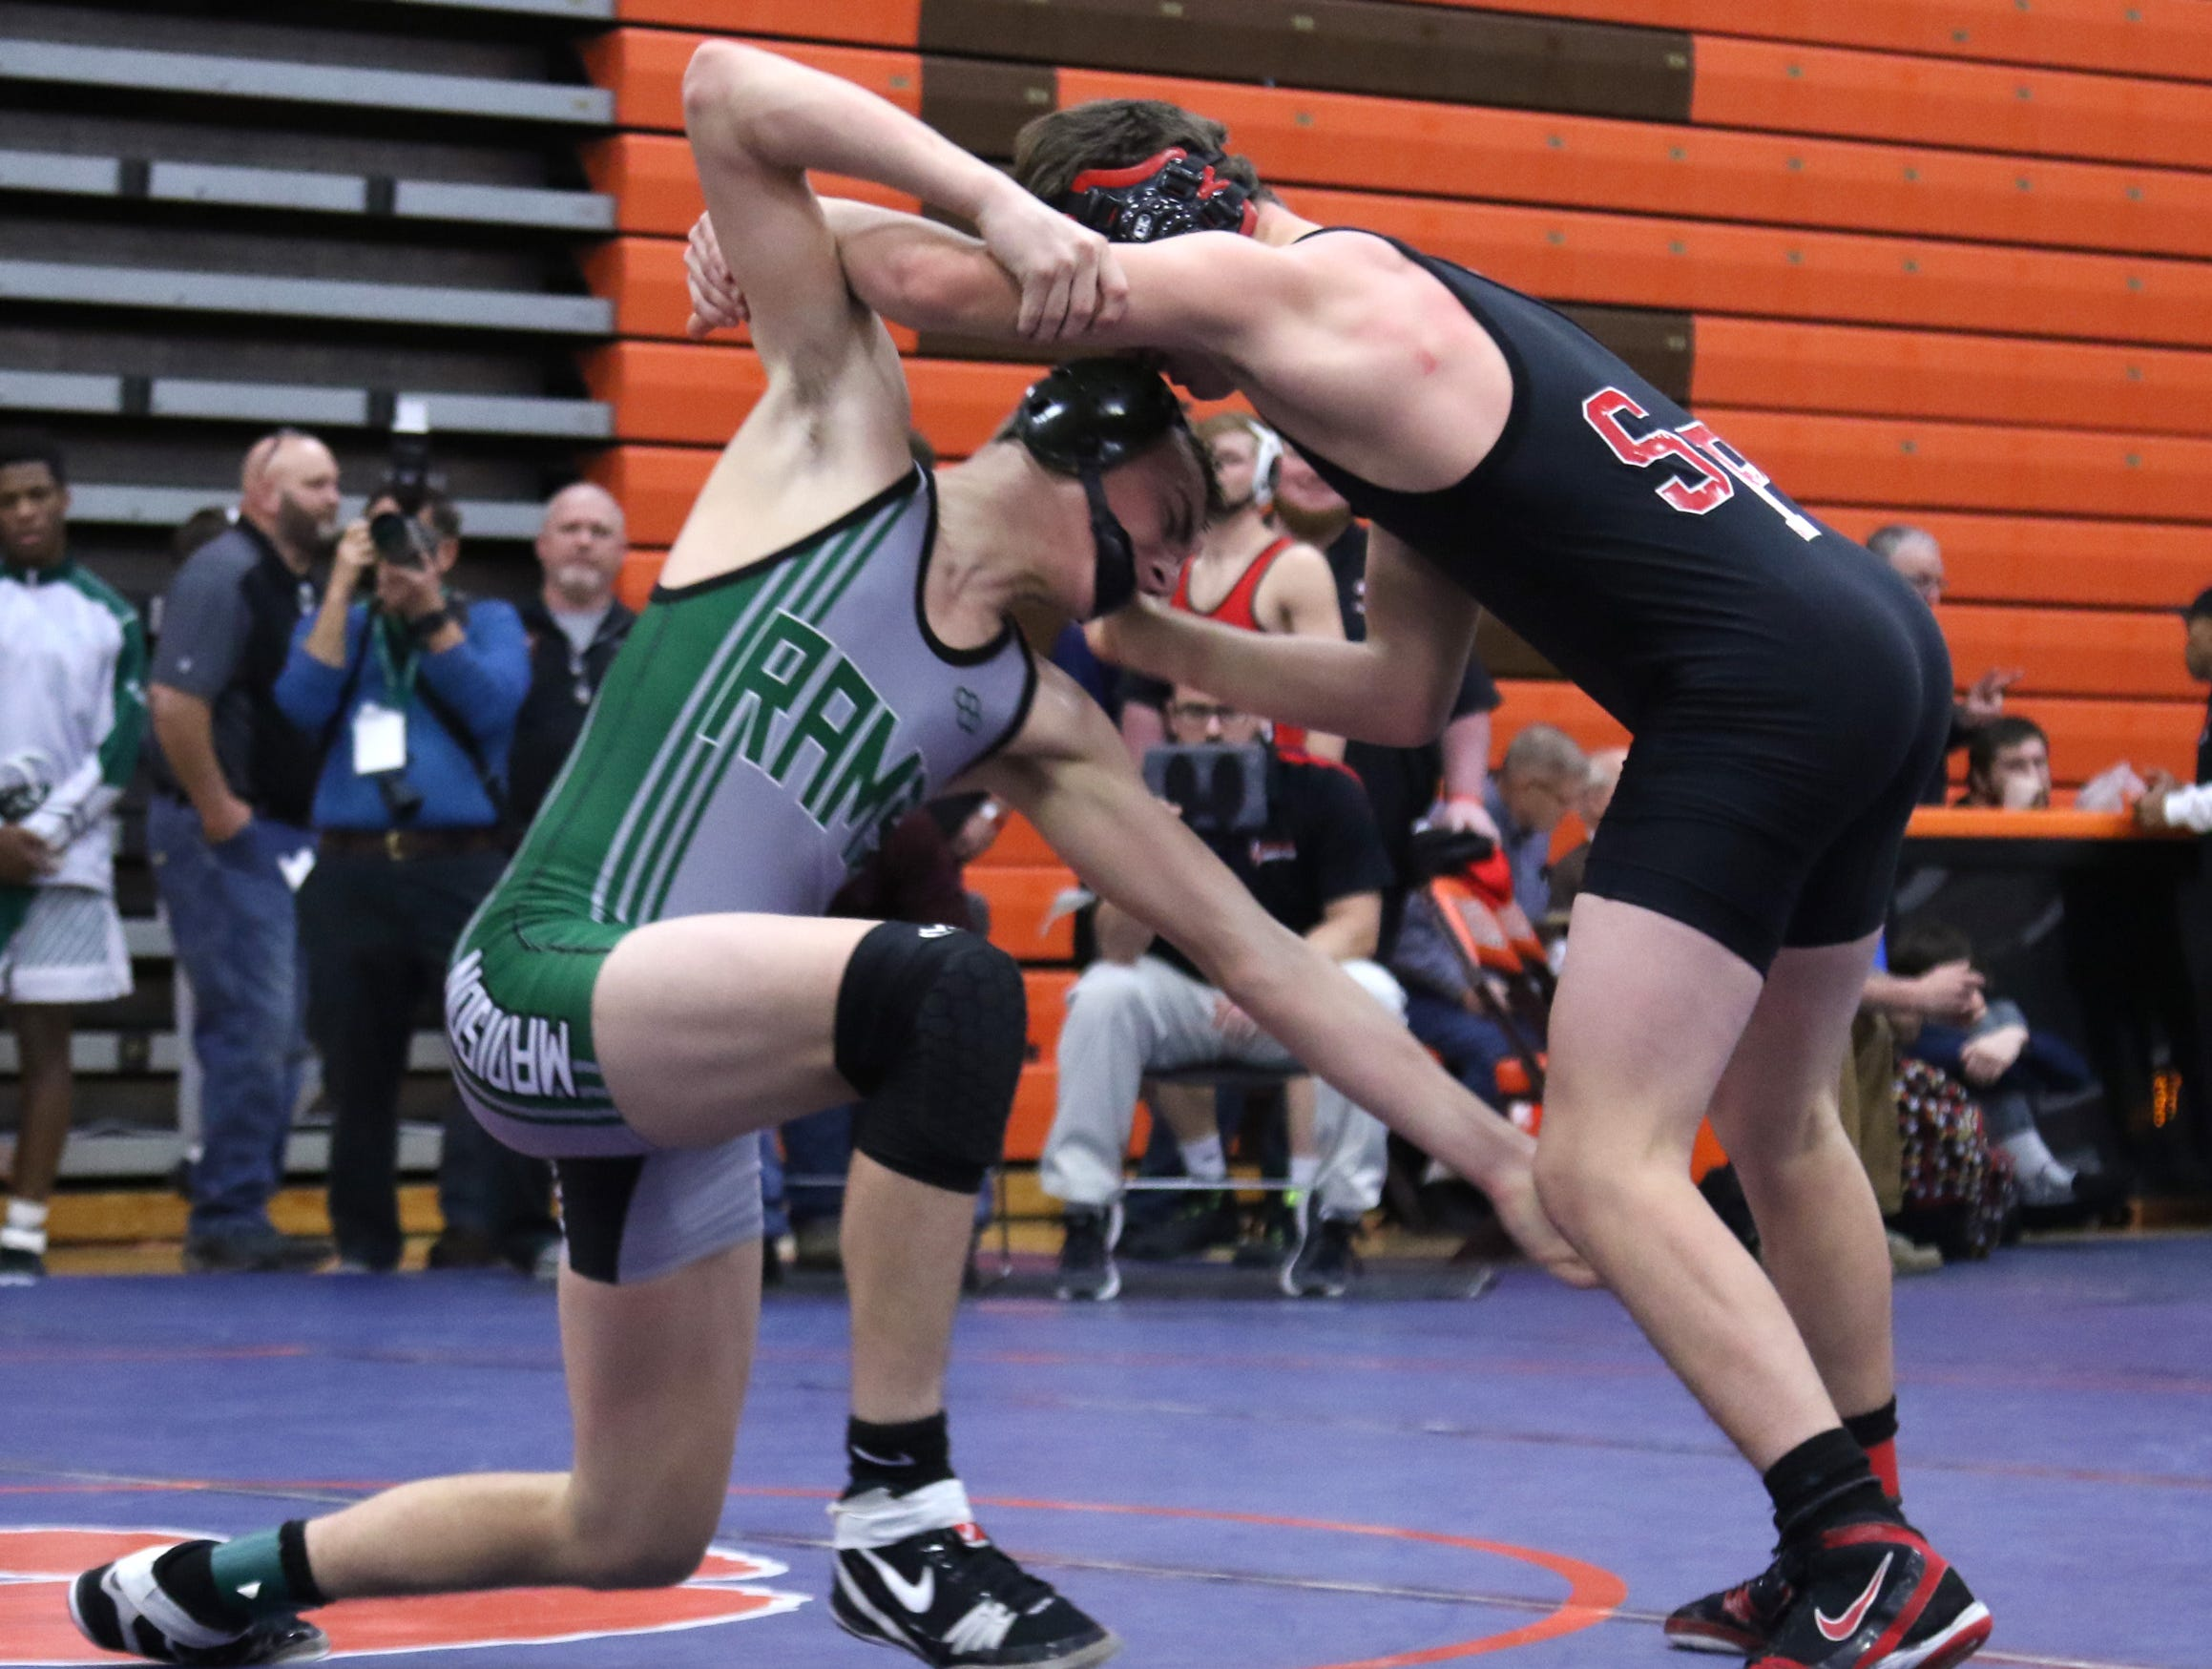 Madison's Nate Barrett spars with his opponent during the J.C. Gorman Wrestling Tournament on Friday.